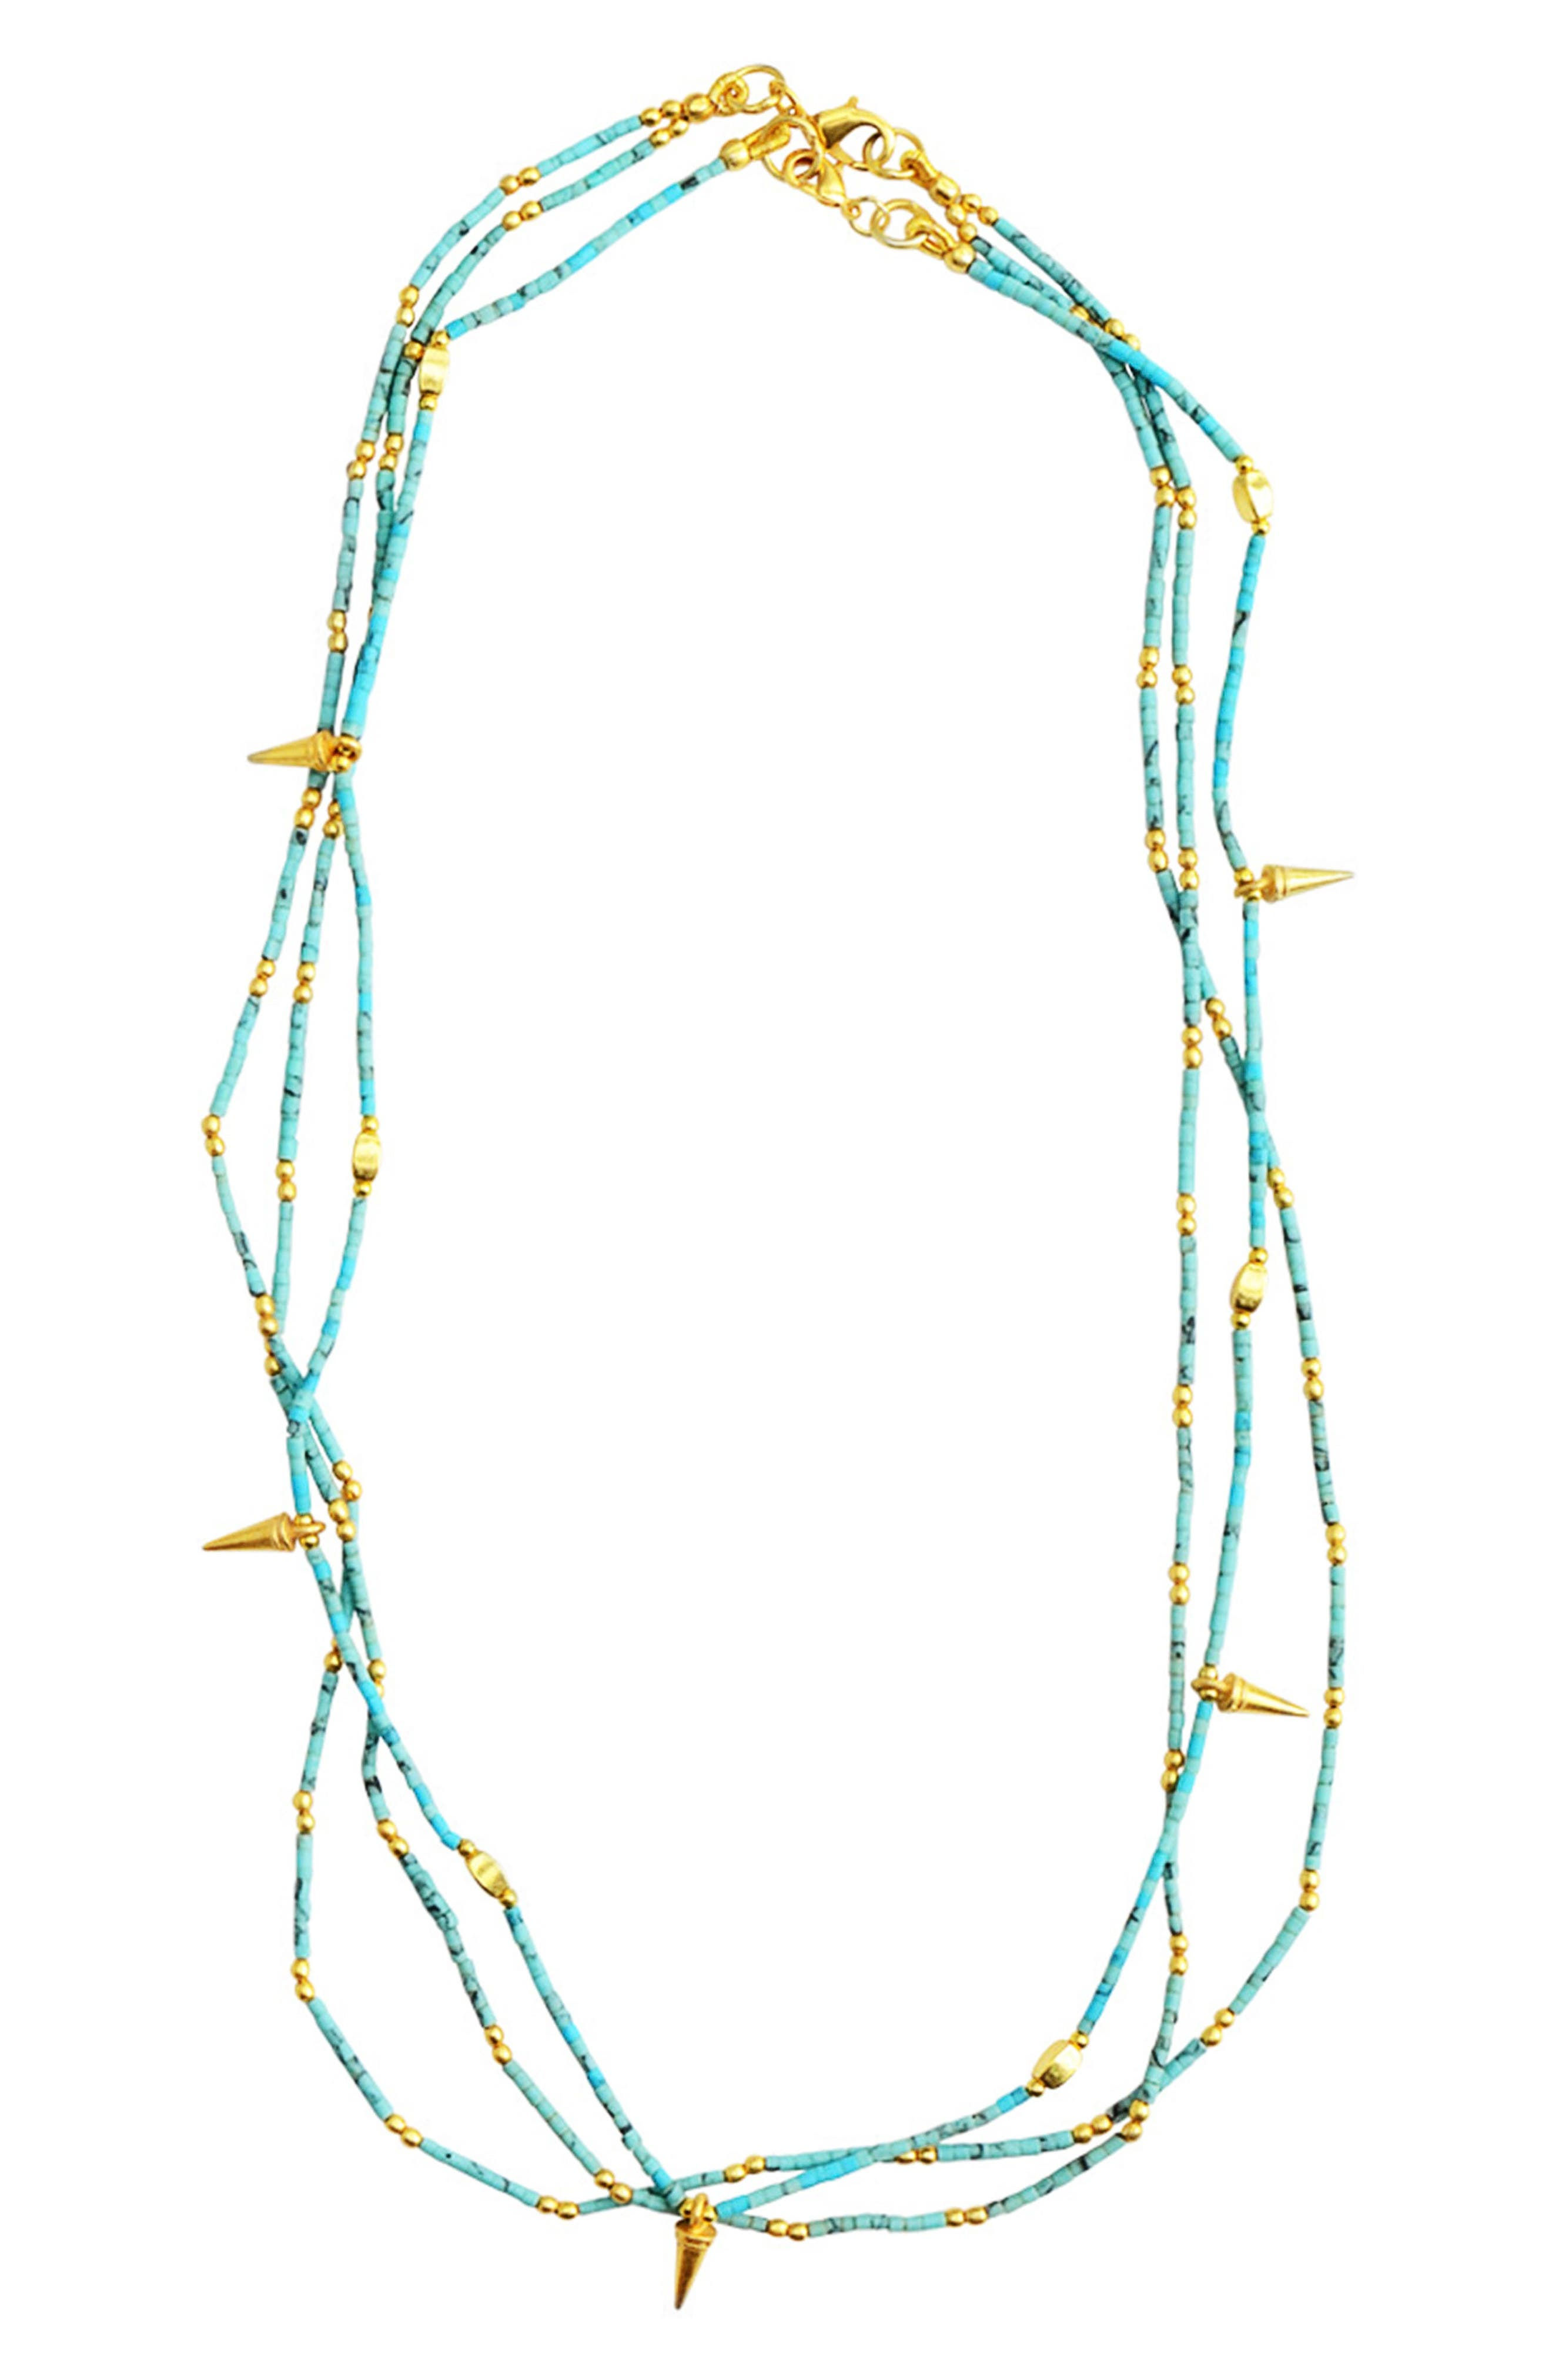 Fleur Set of 2 Necklaces,                             Main thumbnail 1, color,                             Turquoise